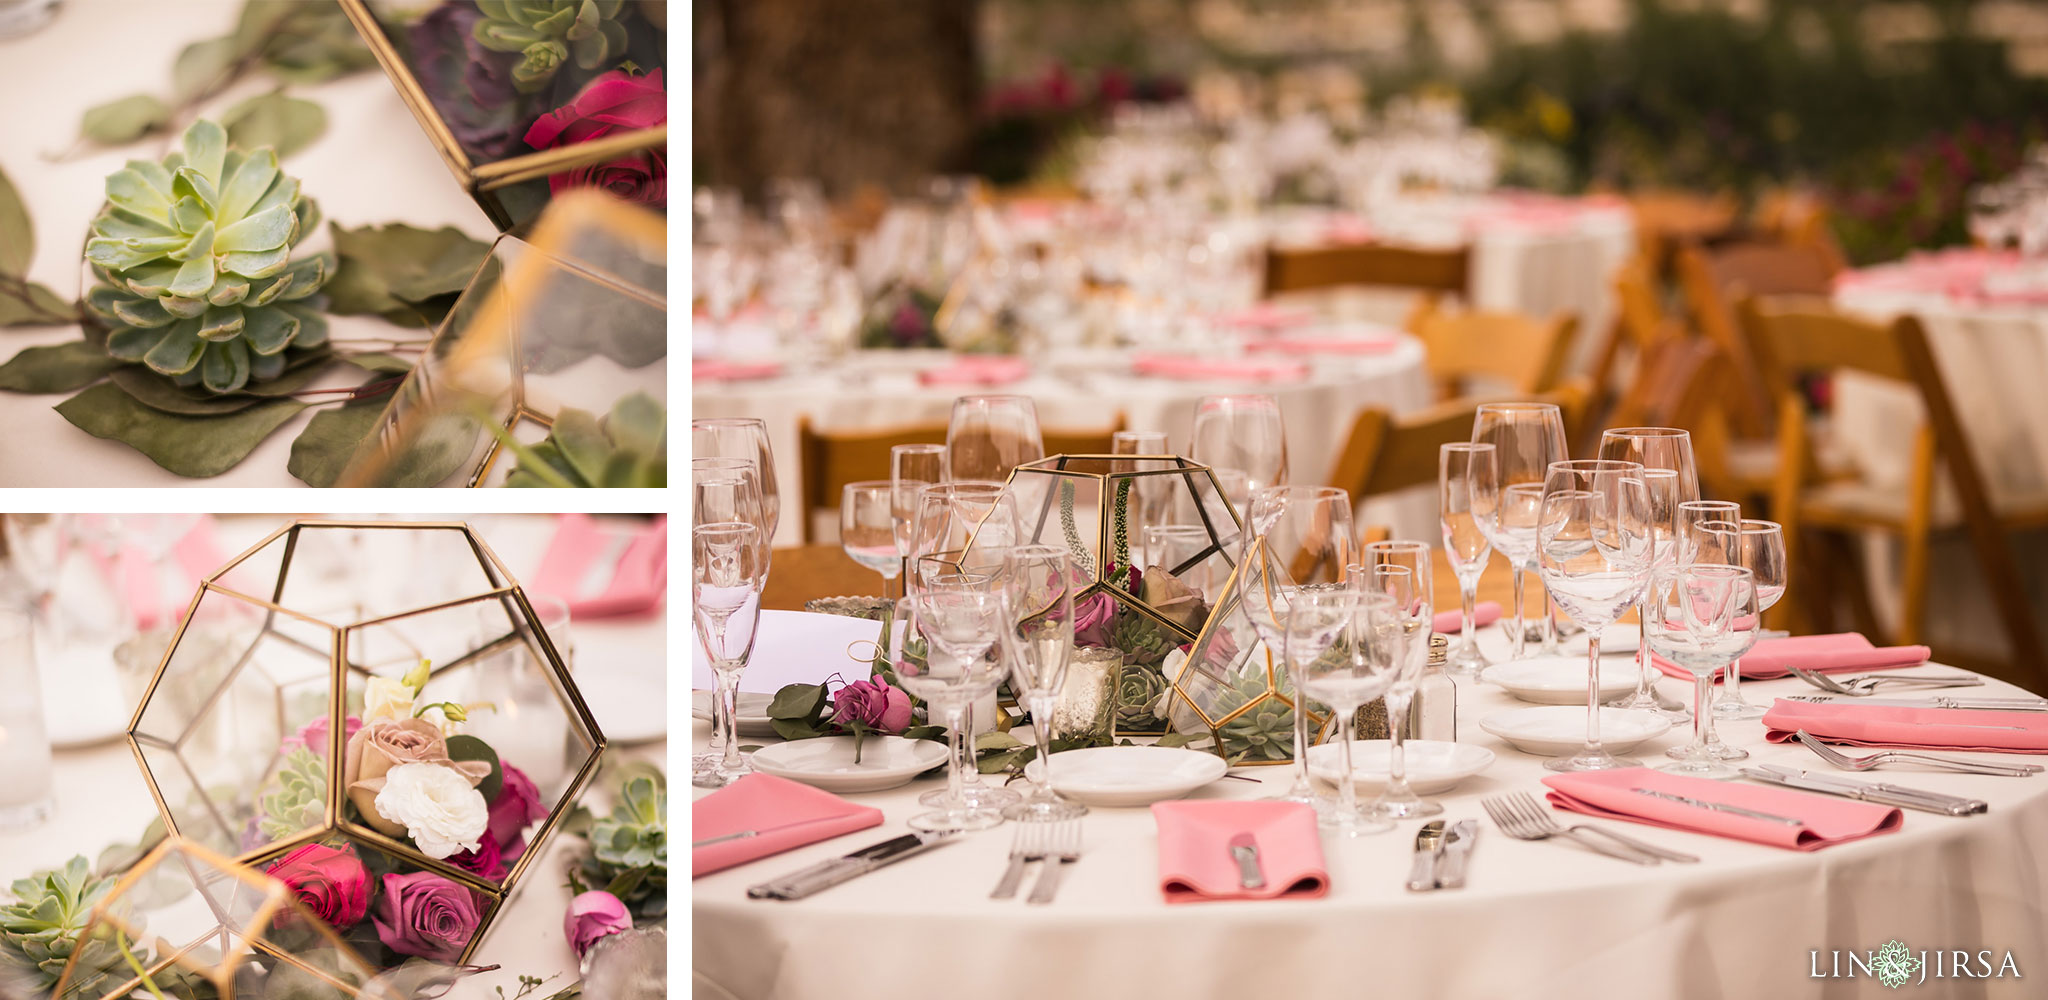 25 odonnell house palm springs wedding reception photography